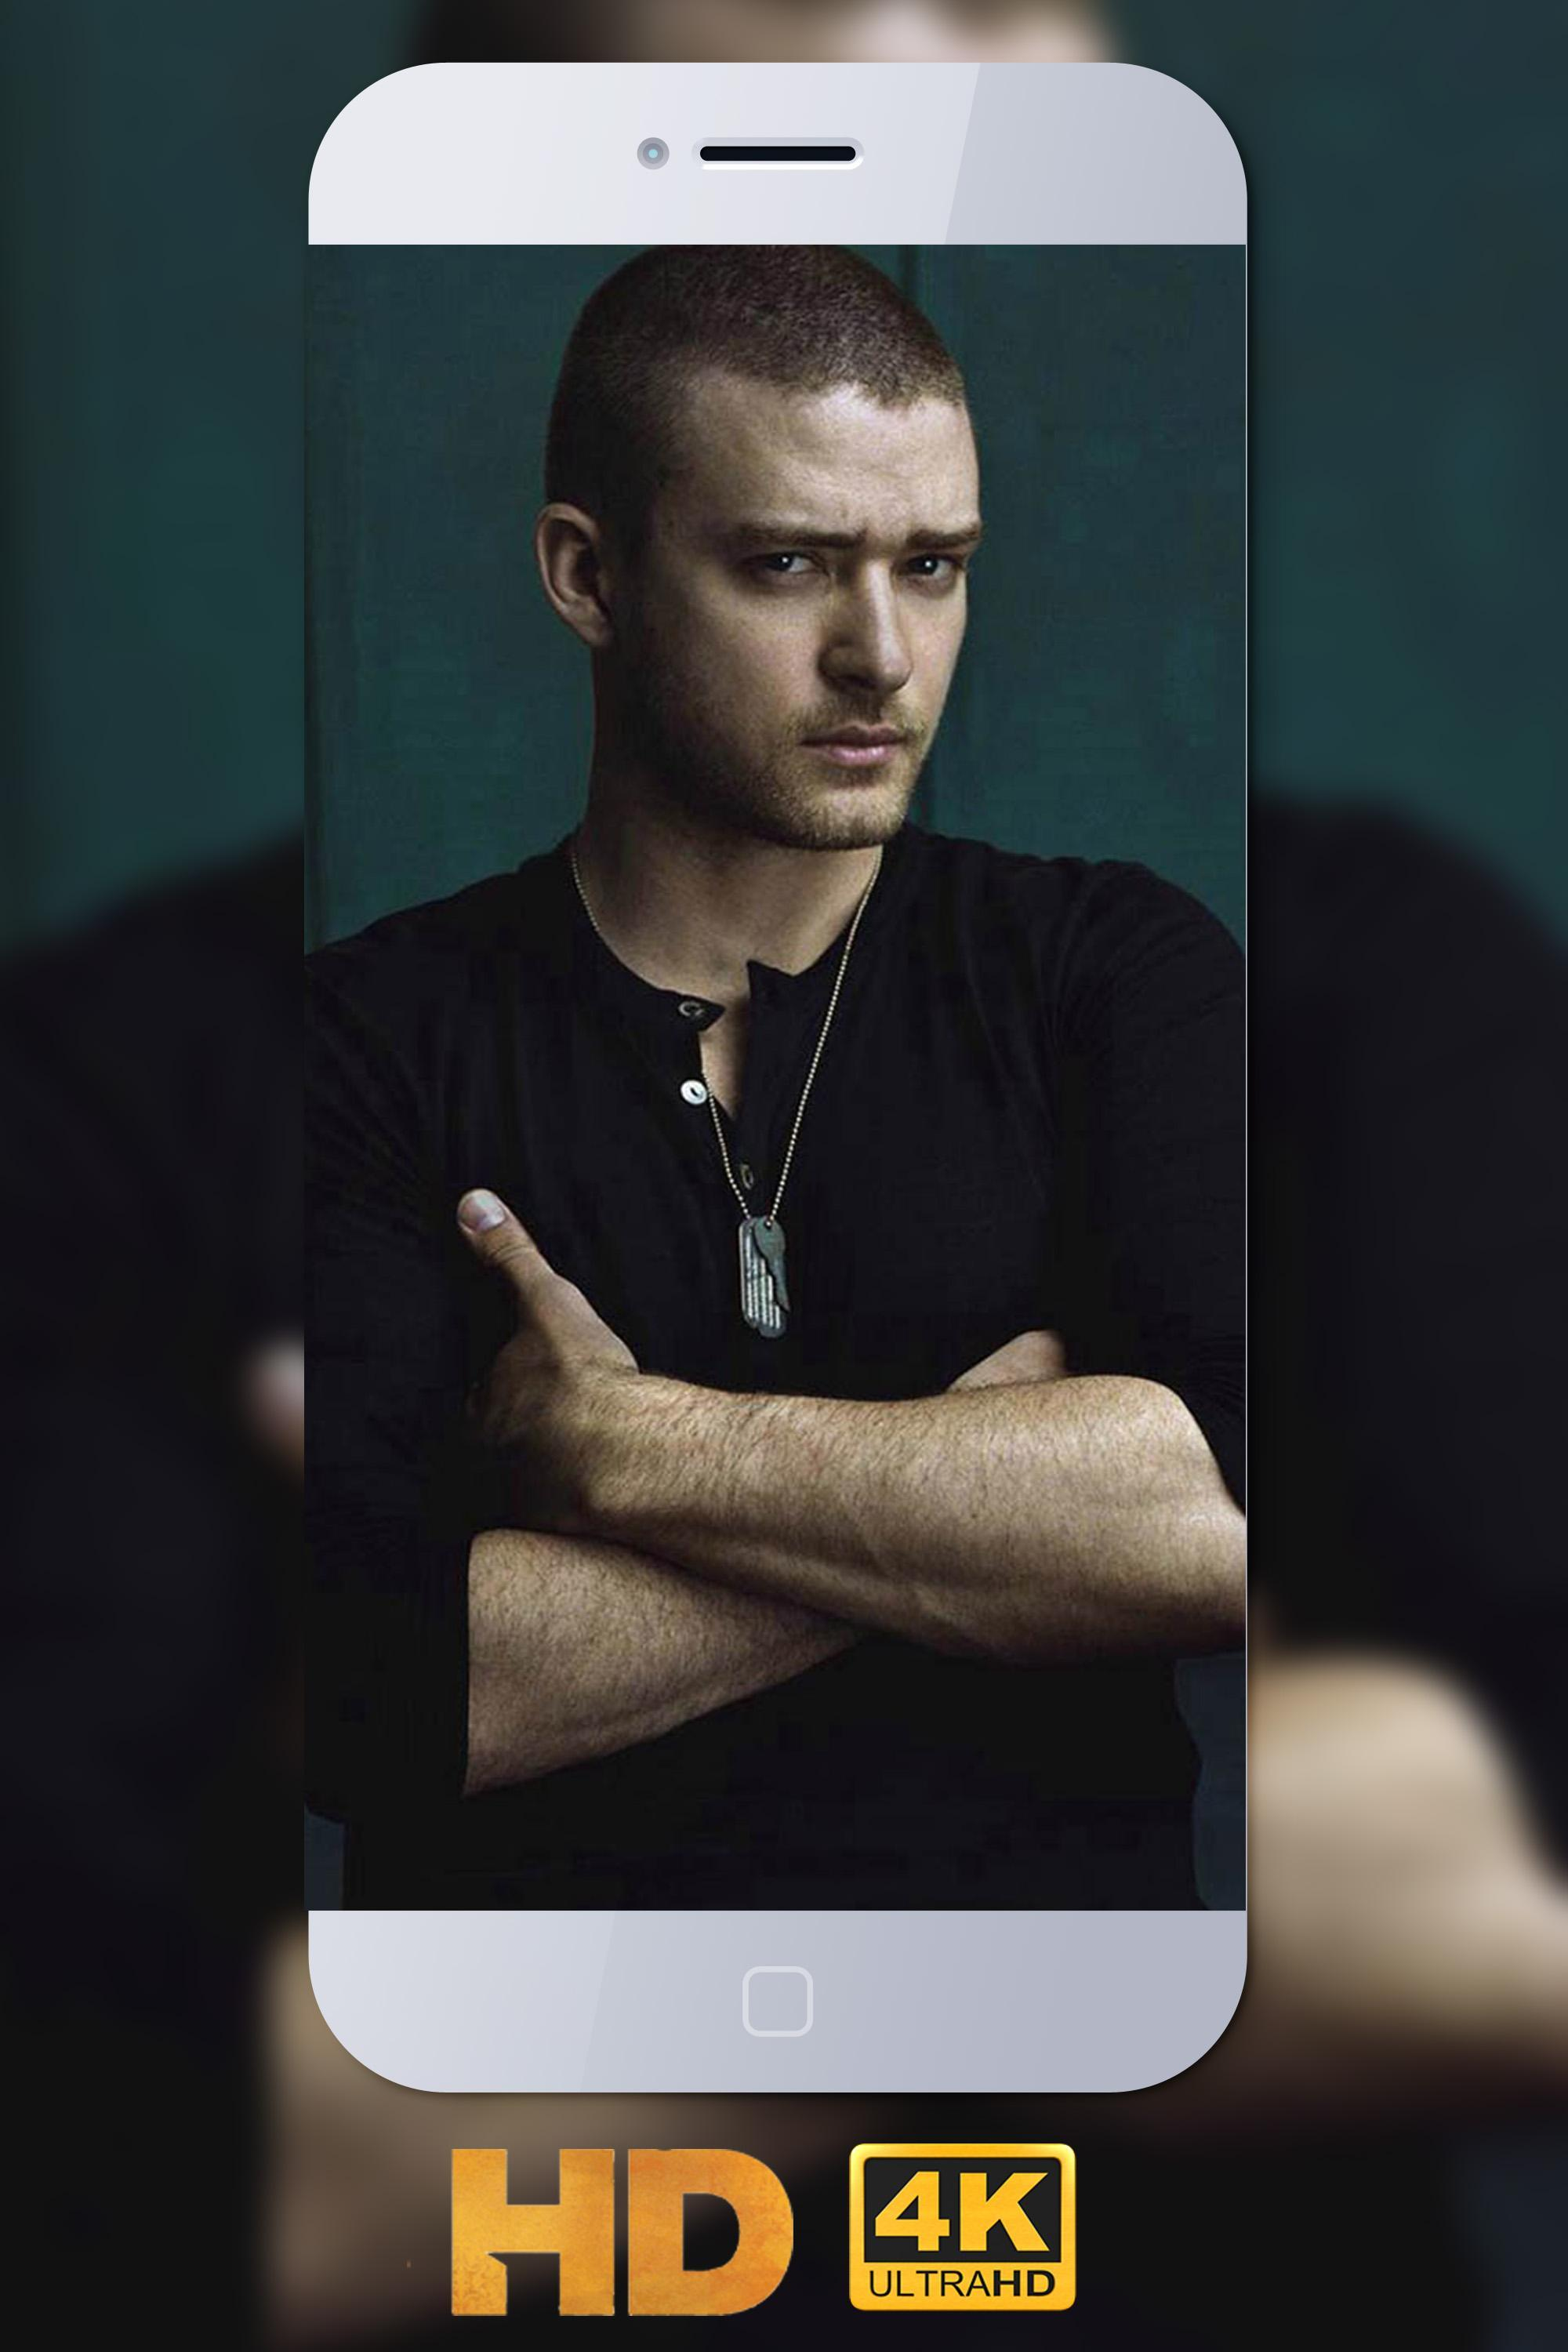 Justin Timberlake Wallpaper Hd For Android Apk Download